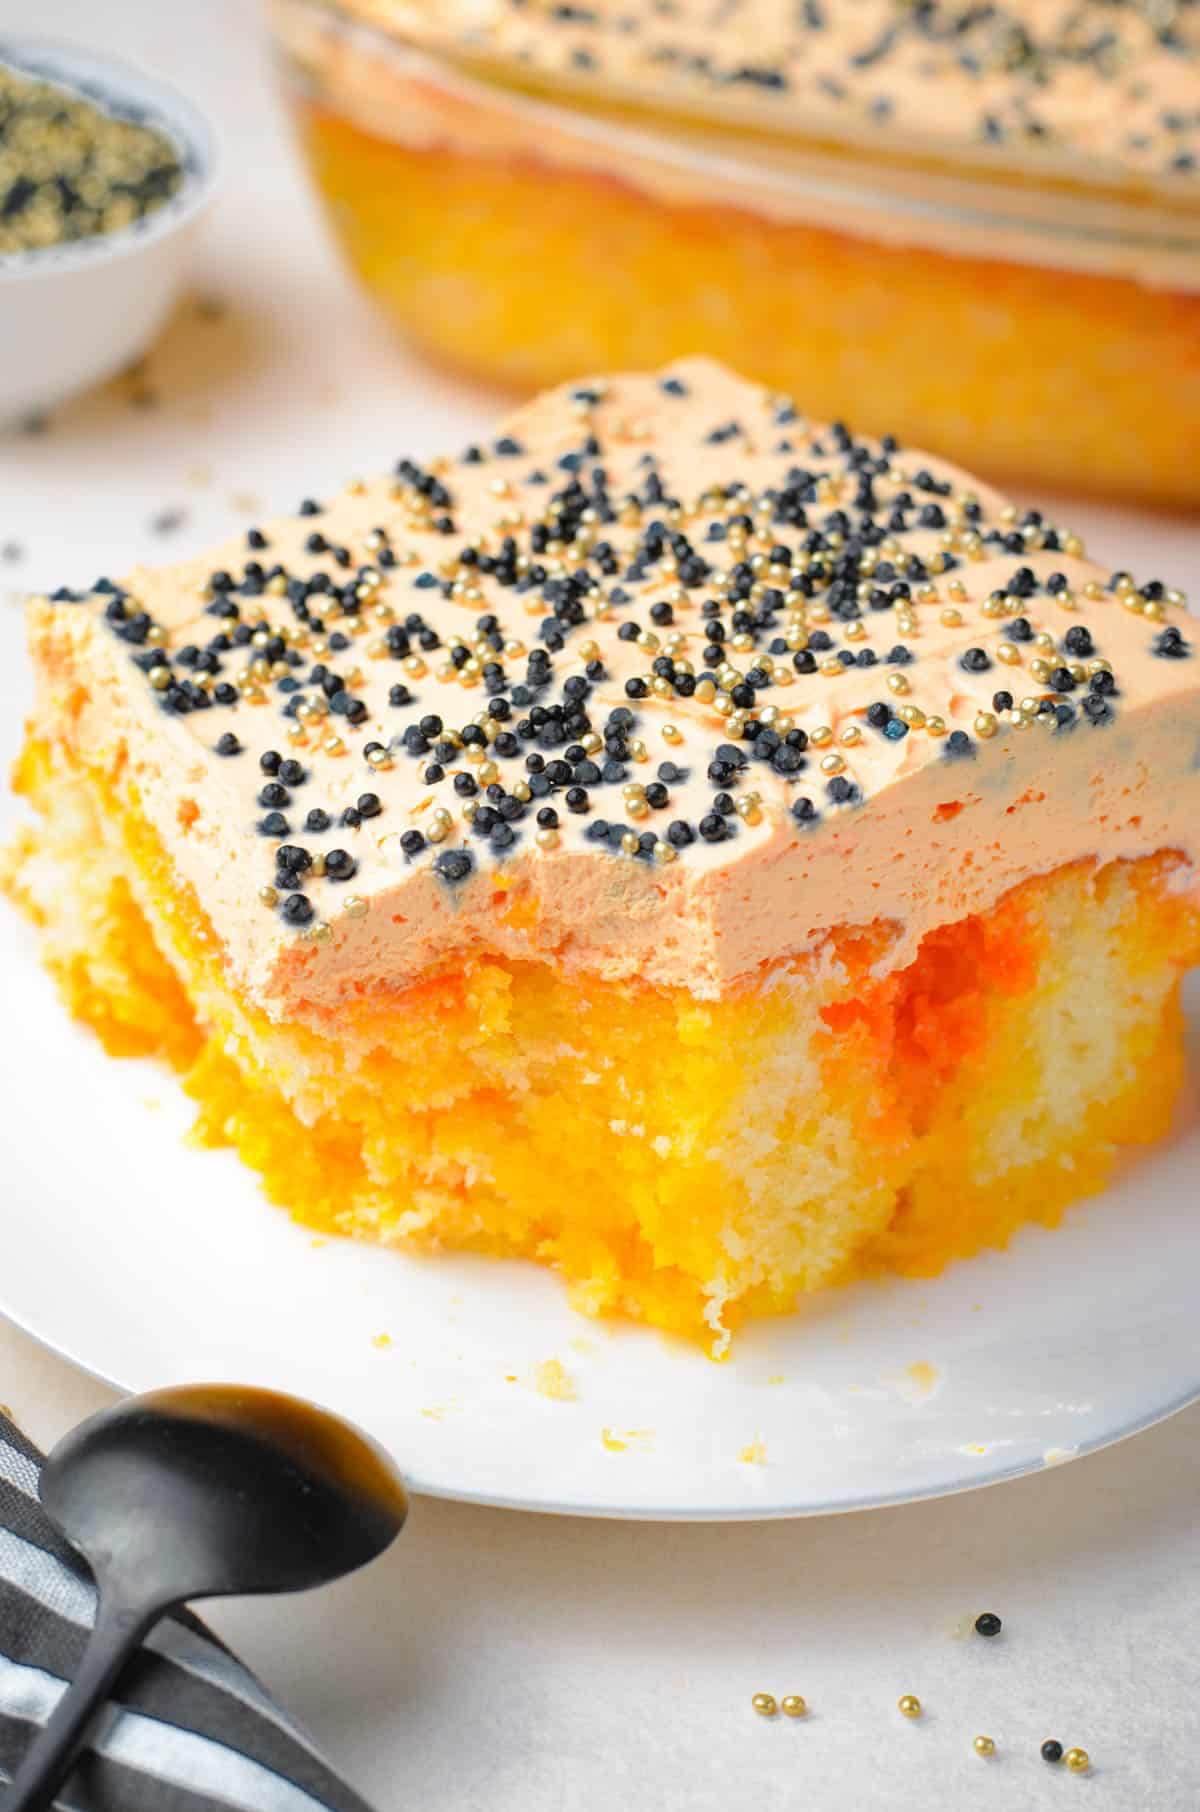 orange striped poke cake with a fork and spoon and black sprinkles